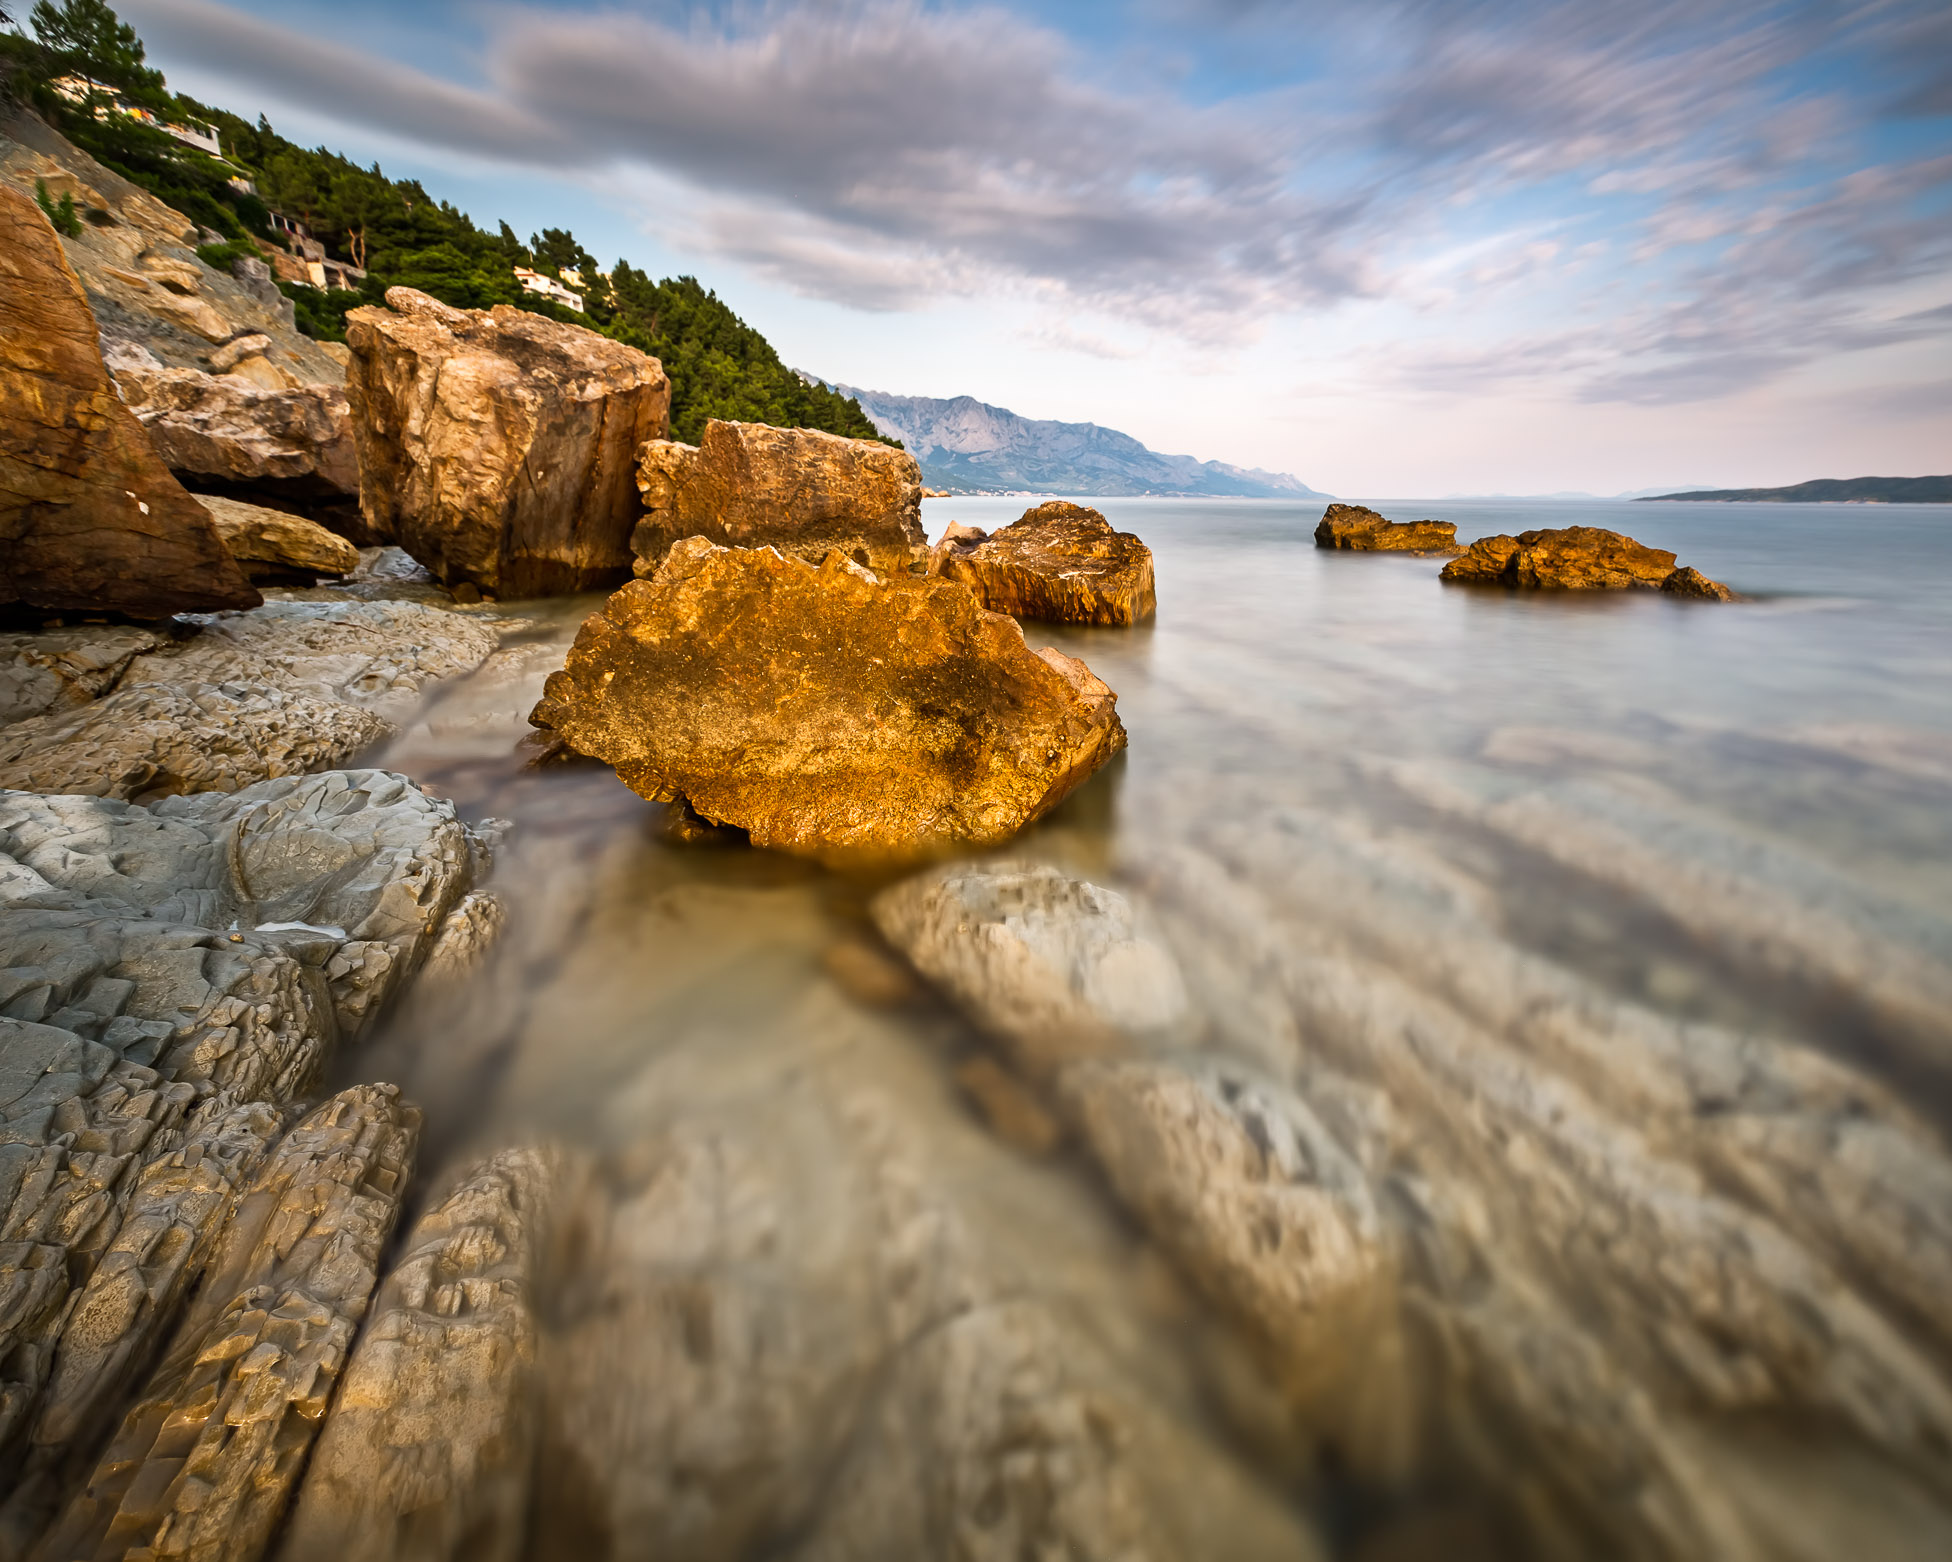 Rocky Beach and Transparent Adriatic Sea near Omis in the Evening, Dalmatia, Croatia